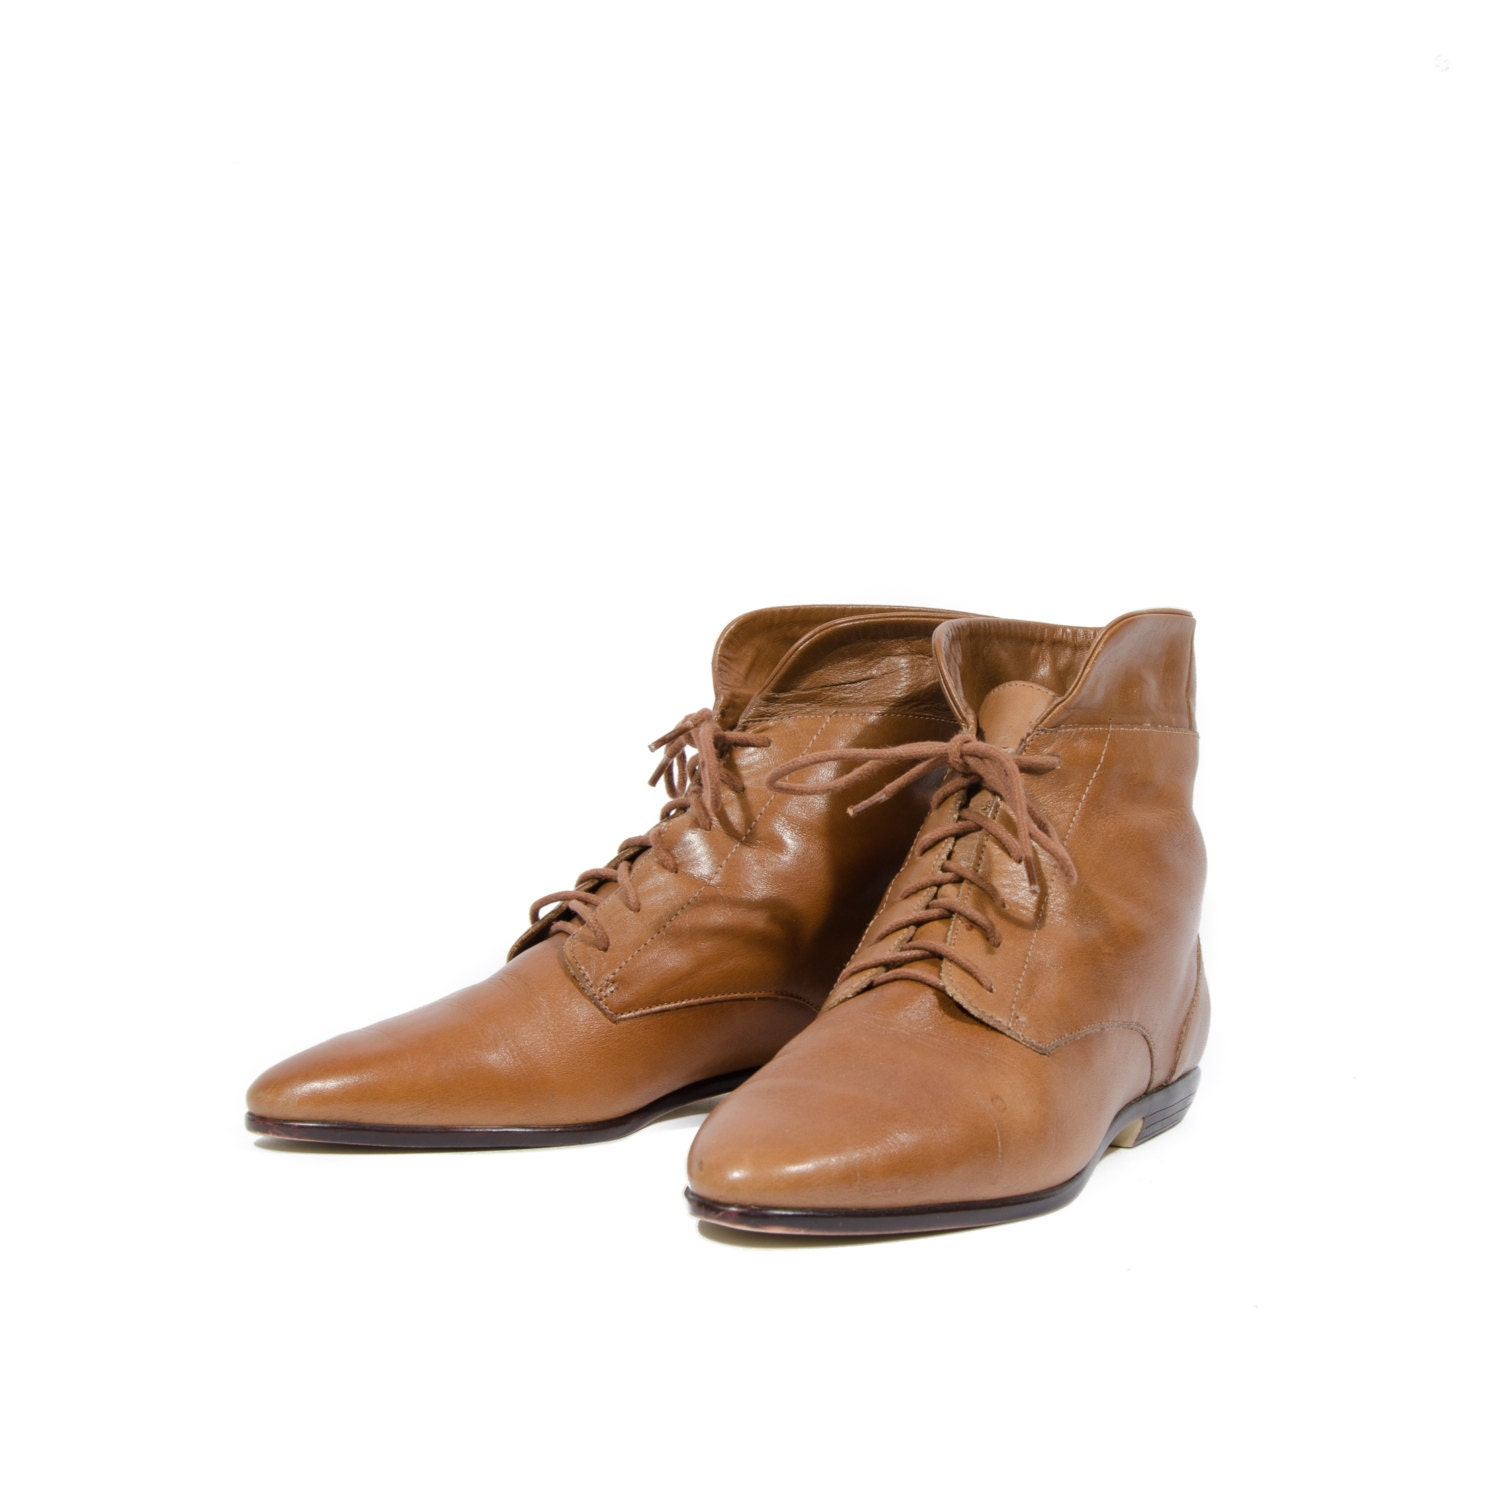 caramel brown pixie lace up ankle boots fold by